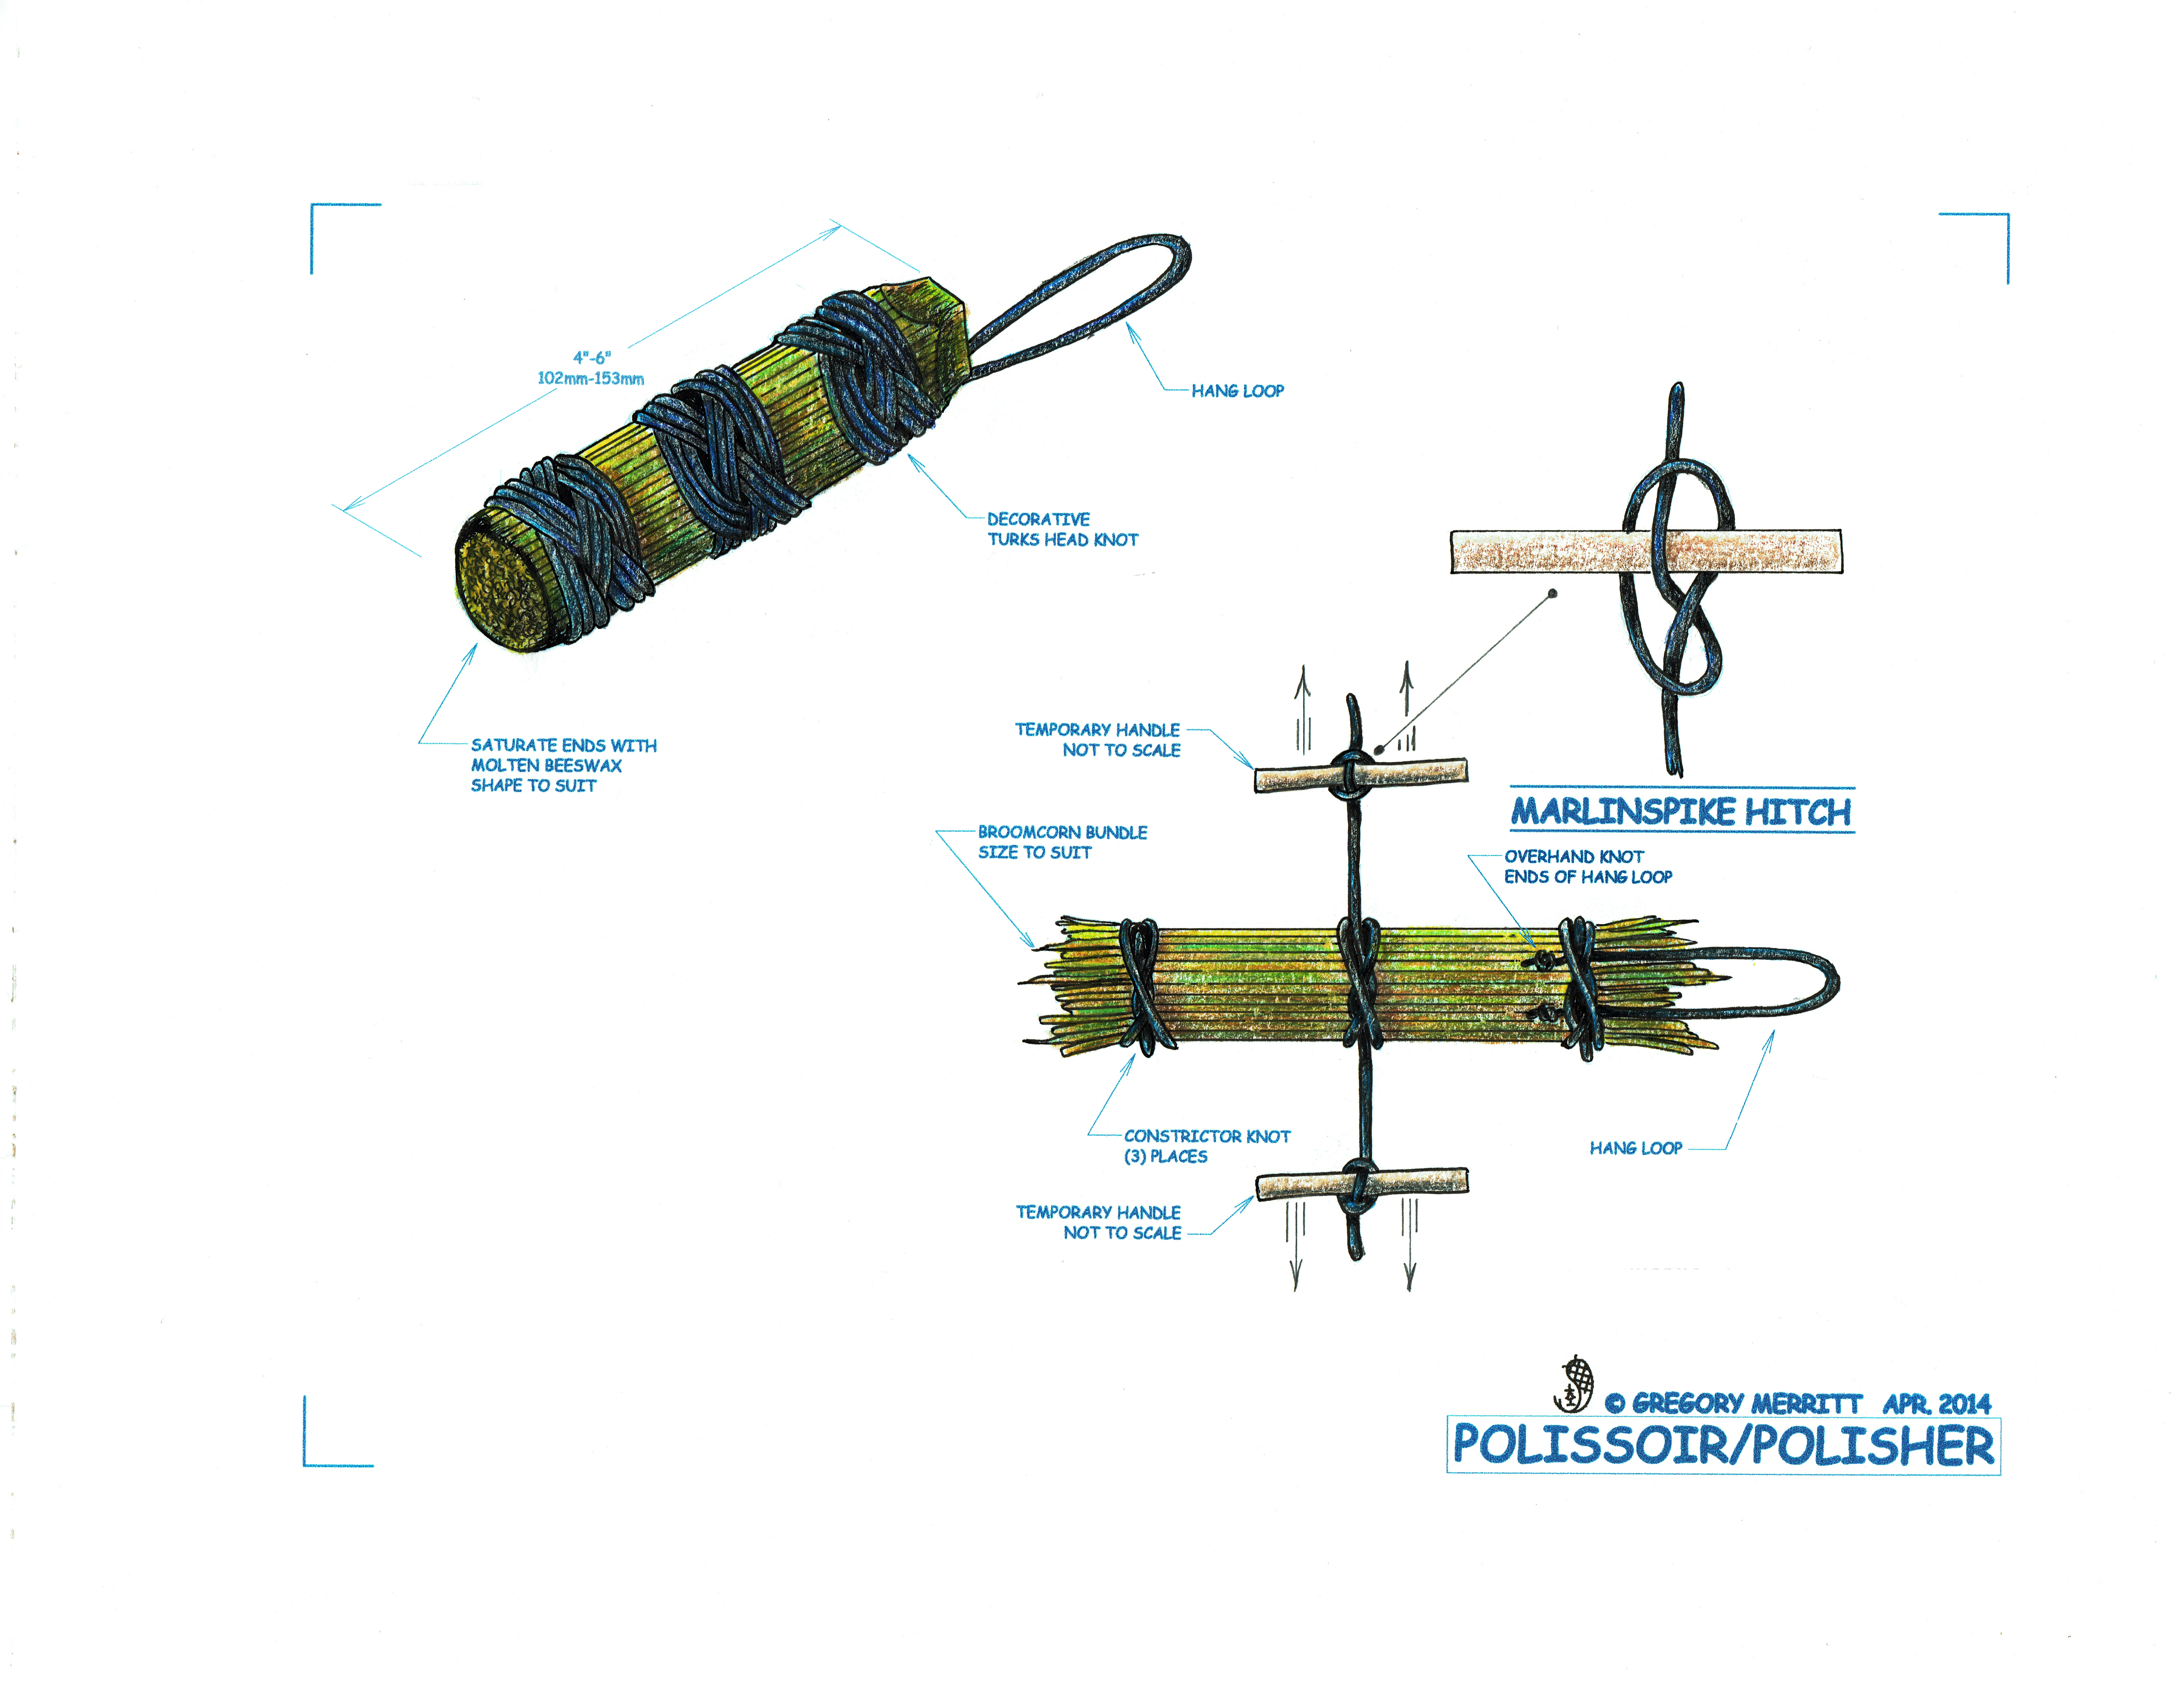 Build Yourself A Polissoir Hillbilly Daiku Simple Circuit I Hope That You Will At Least Give It Try And Add This Effective Tool To Your Finishing Kit